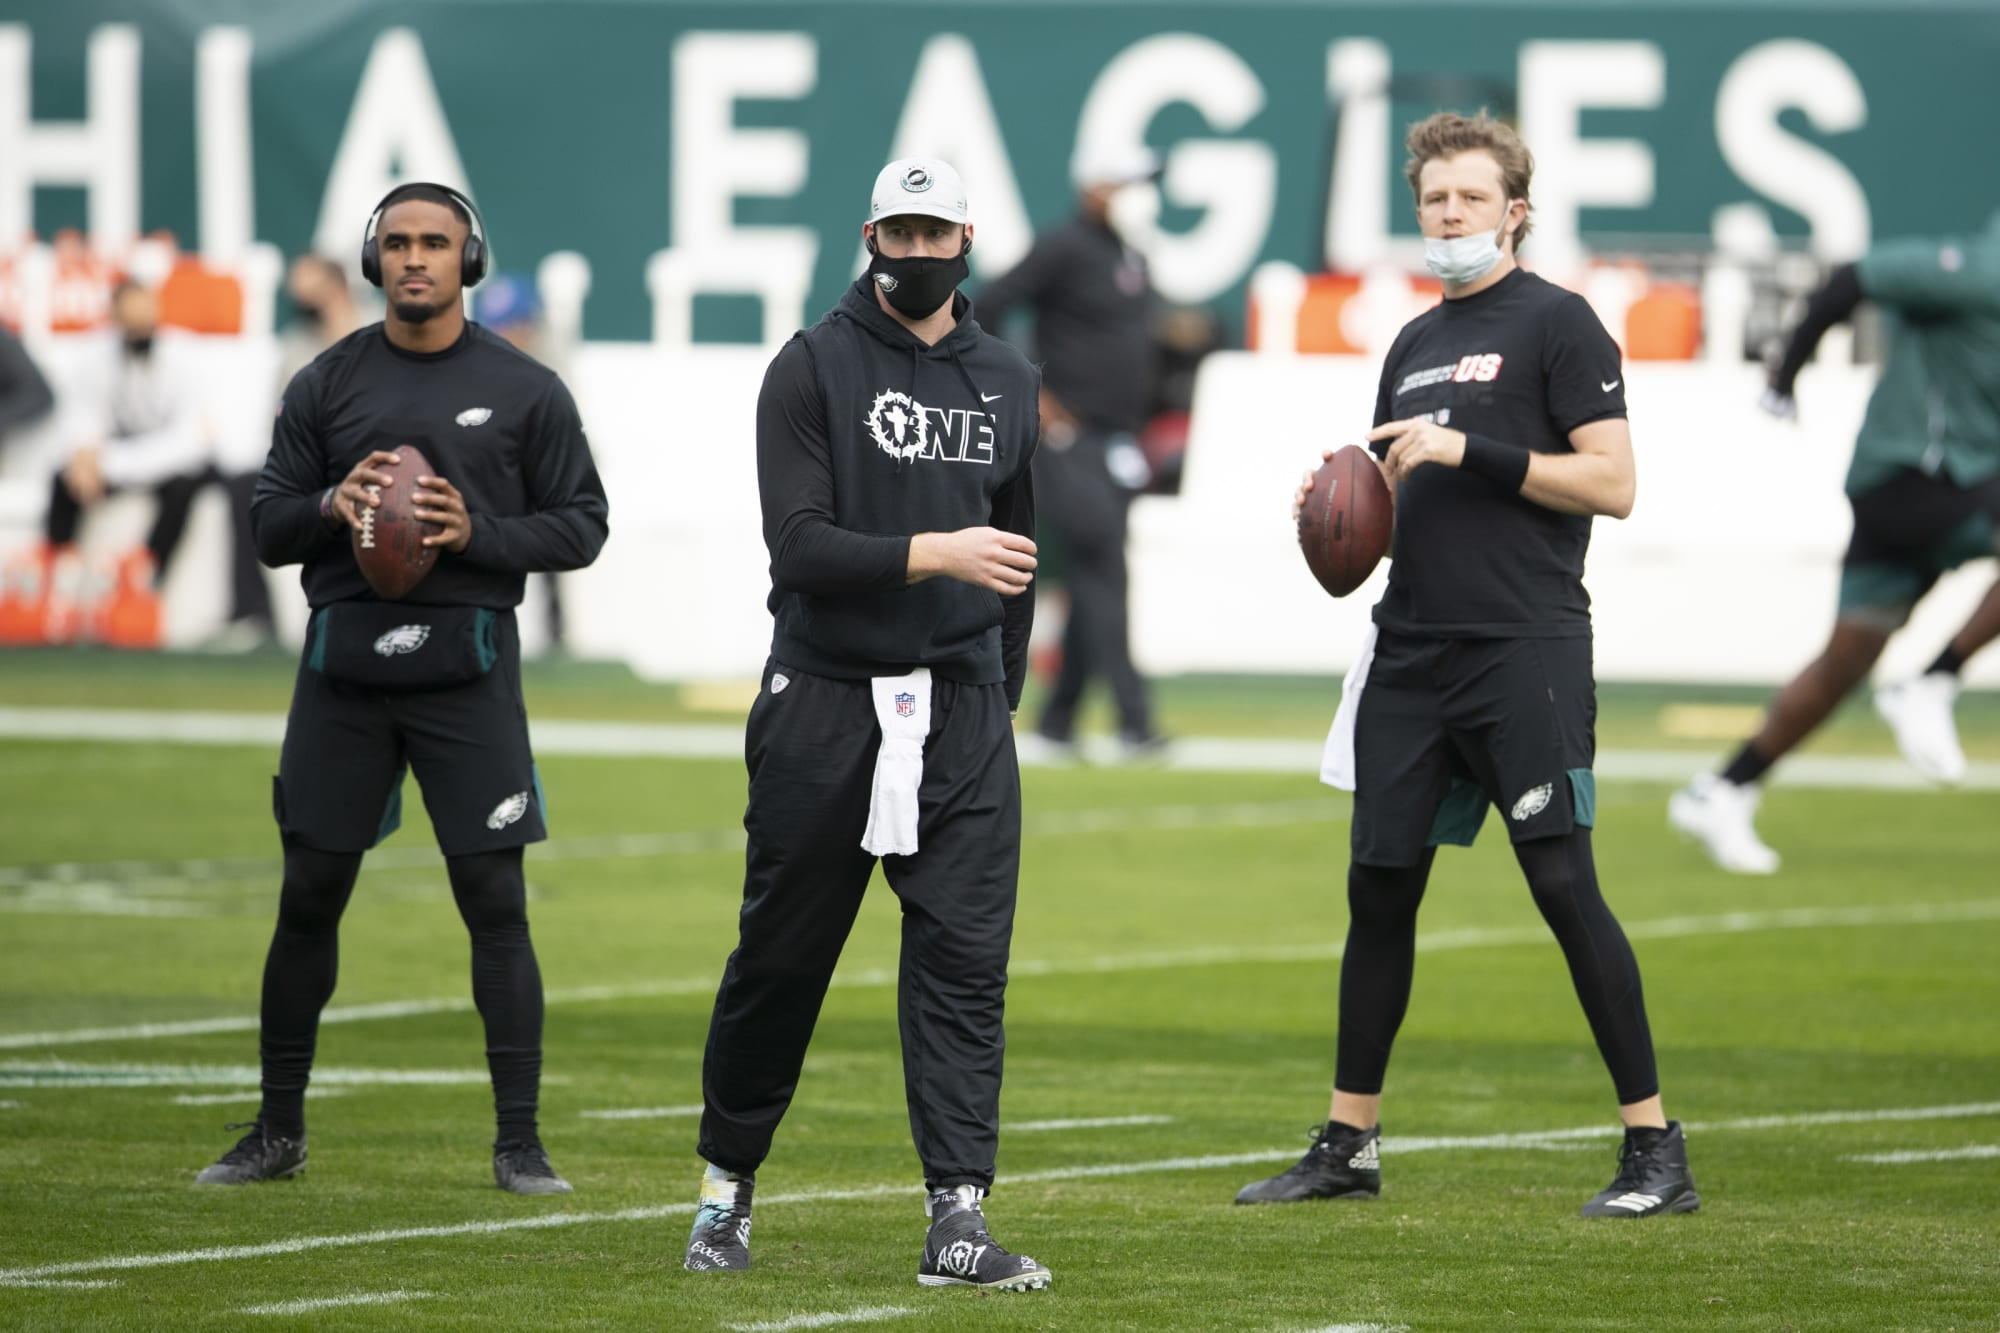 Carson Wentz adds ammo to argument that he's a bad teammate - Inside the Iggles